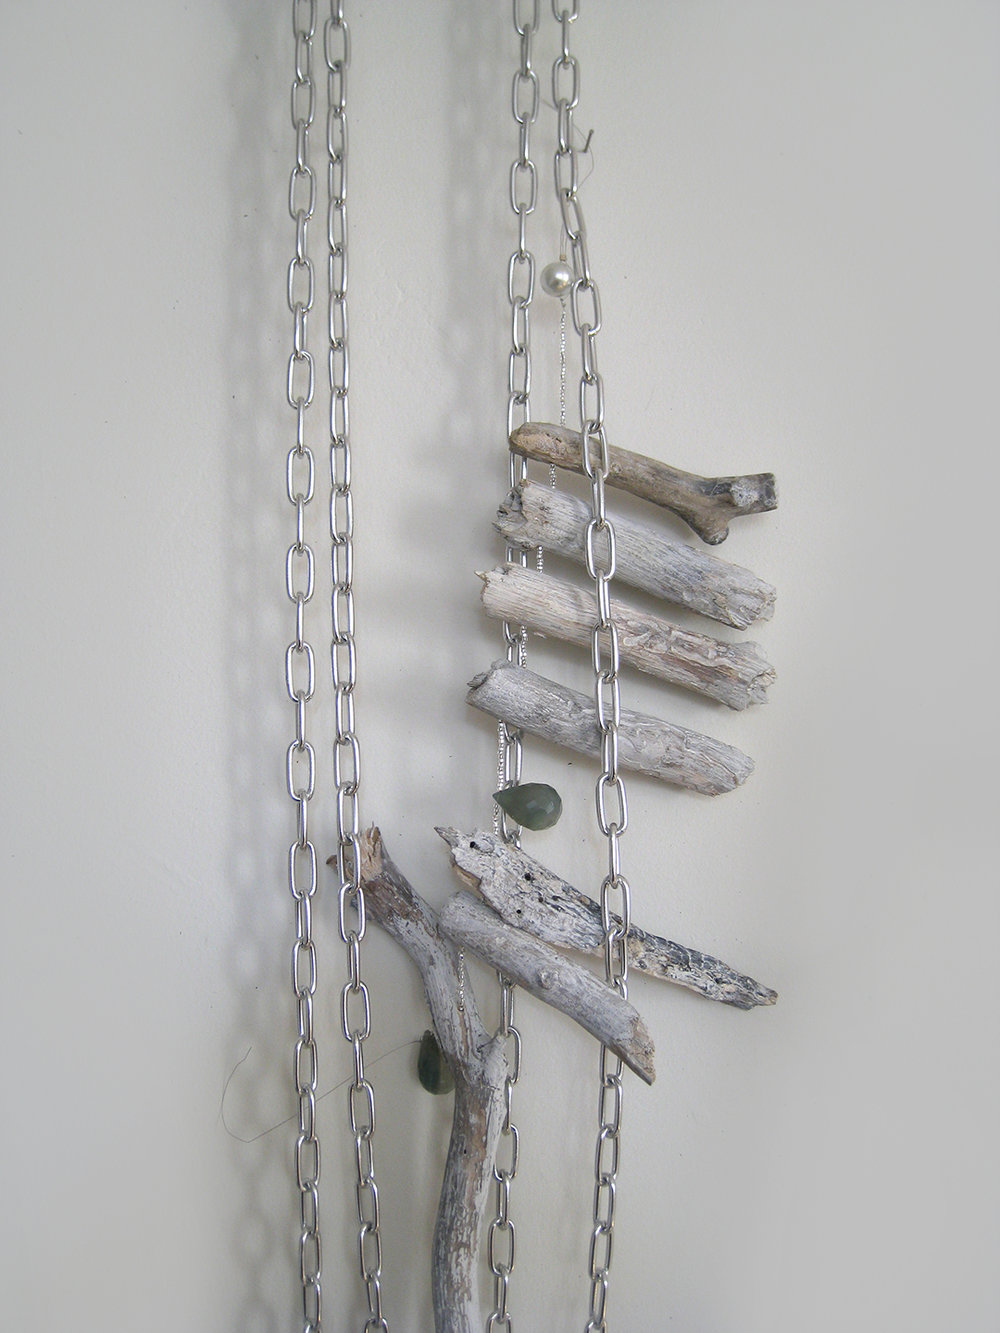 "Iron Tongue Milks the Girl, Me As A Goddess 3"", 2009. Aprox. 6' long. Steel chain and tag, Chalcedony stone, glass beads, drift wood."